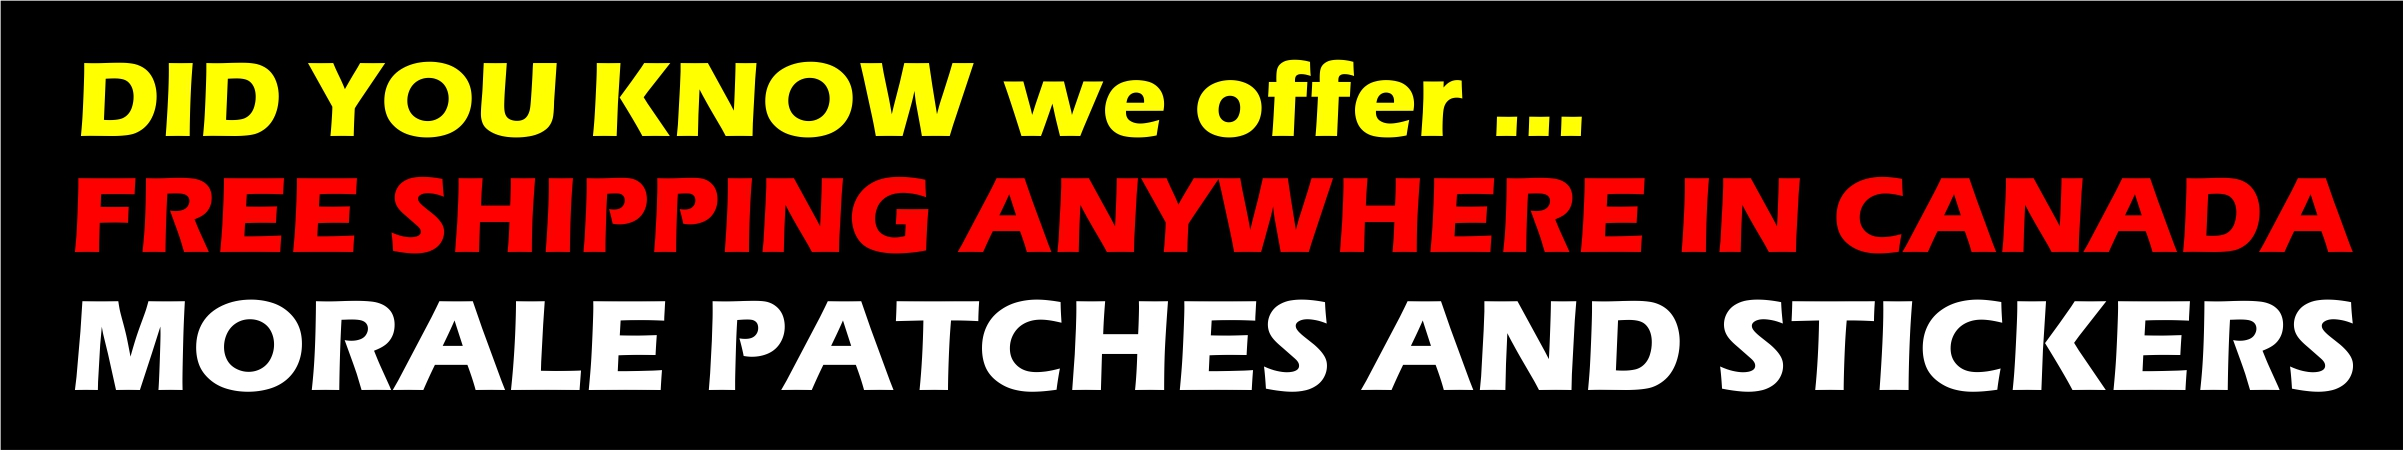 free-shipping-stickers-and-morale-patches.jpg